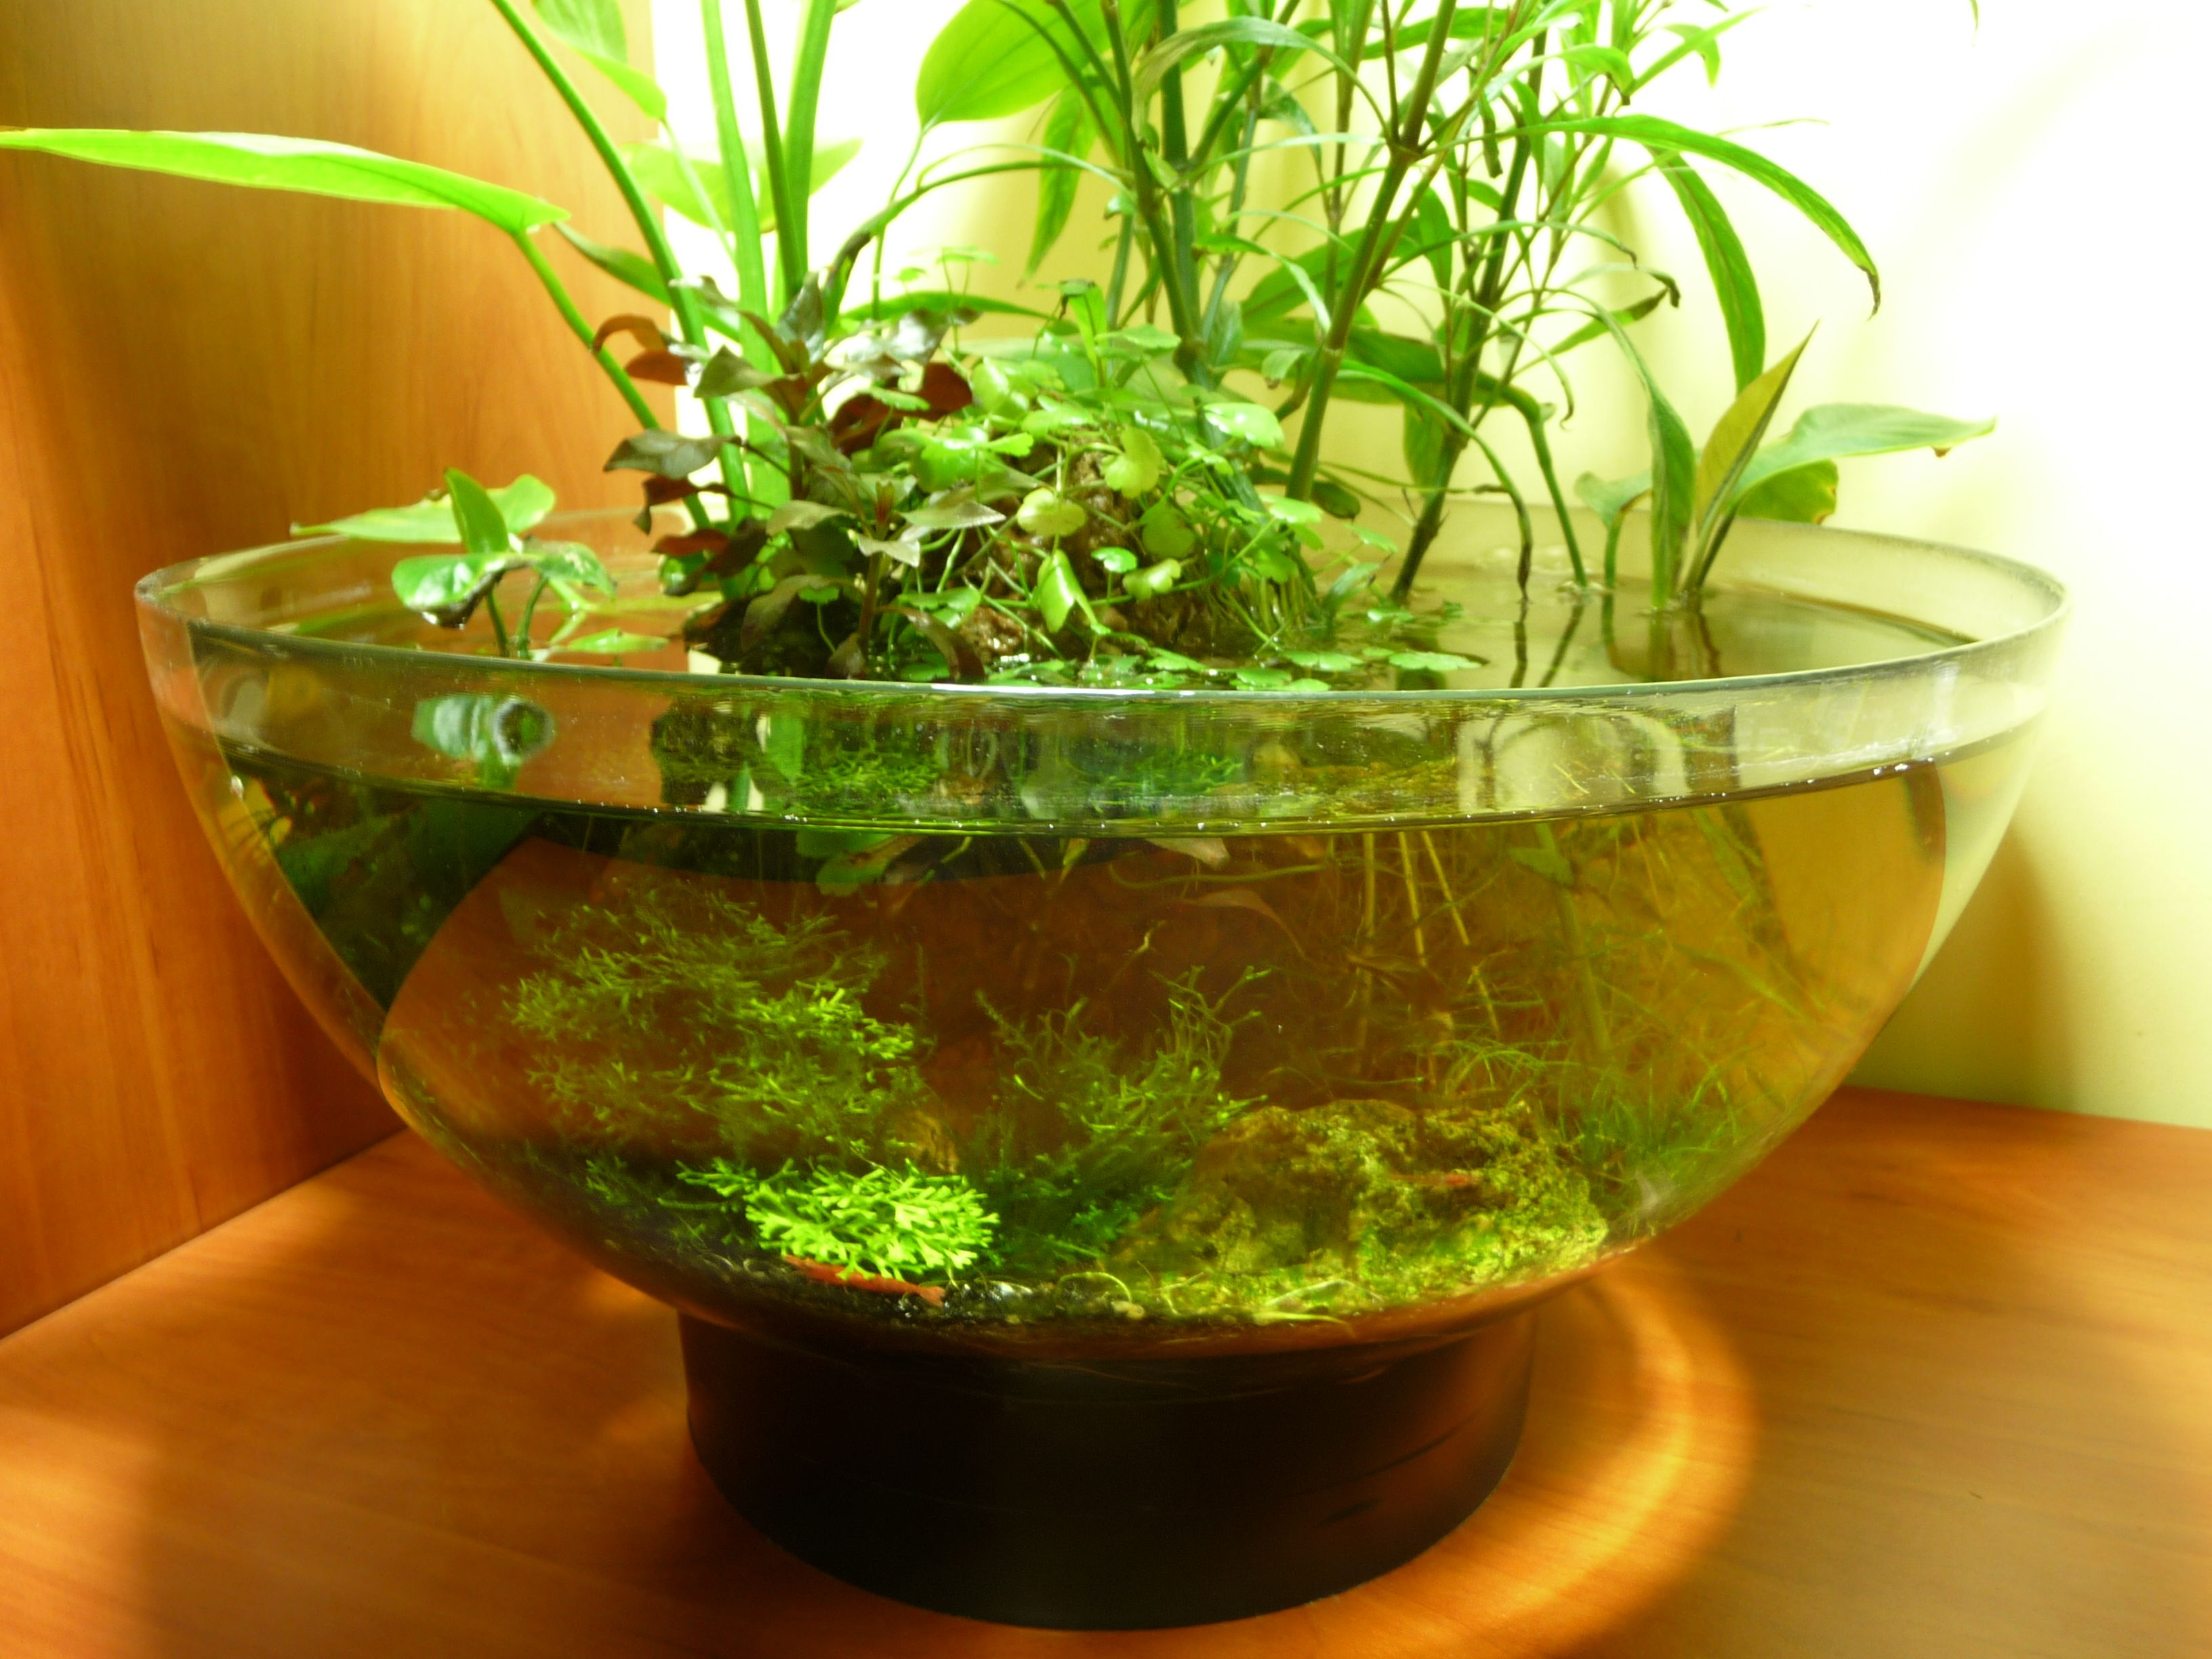 Fish aquarium and good luck - Luffy Marimo Moss Ball Excellent Gift For Your Friend Or Loved Ones To Signify Everlasting Love The Japanese Believe That Marimo Will Bring Good Luck